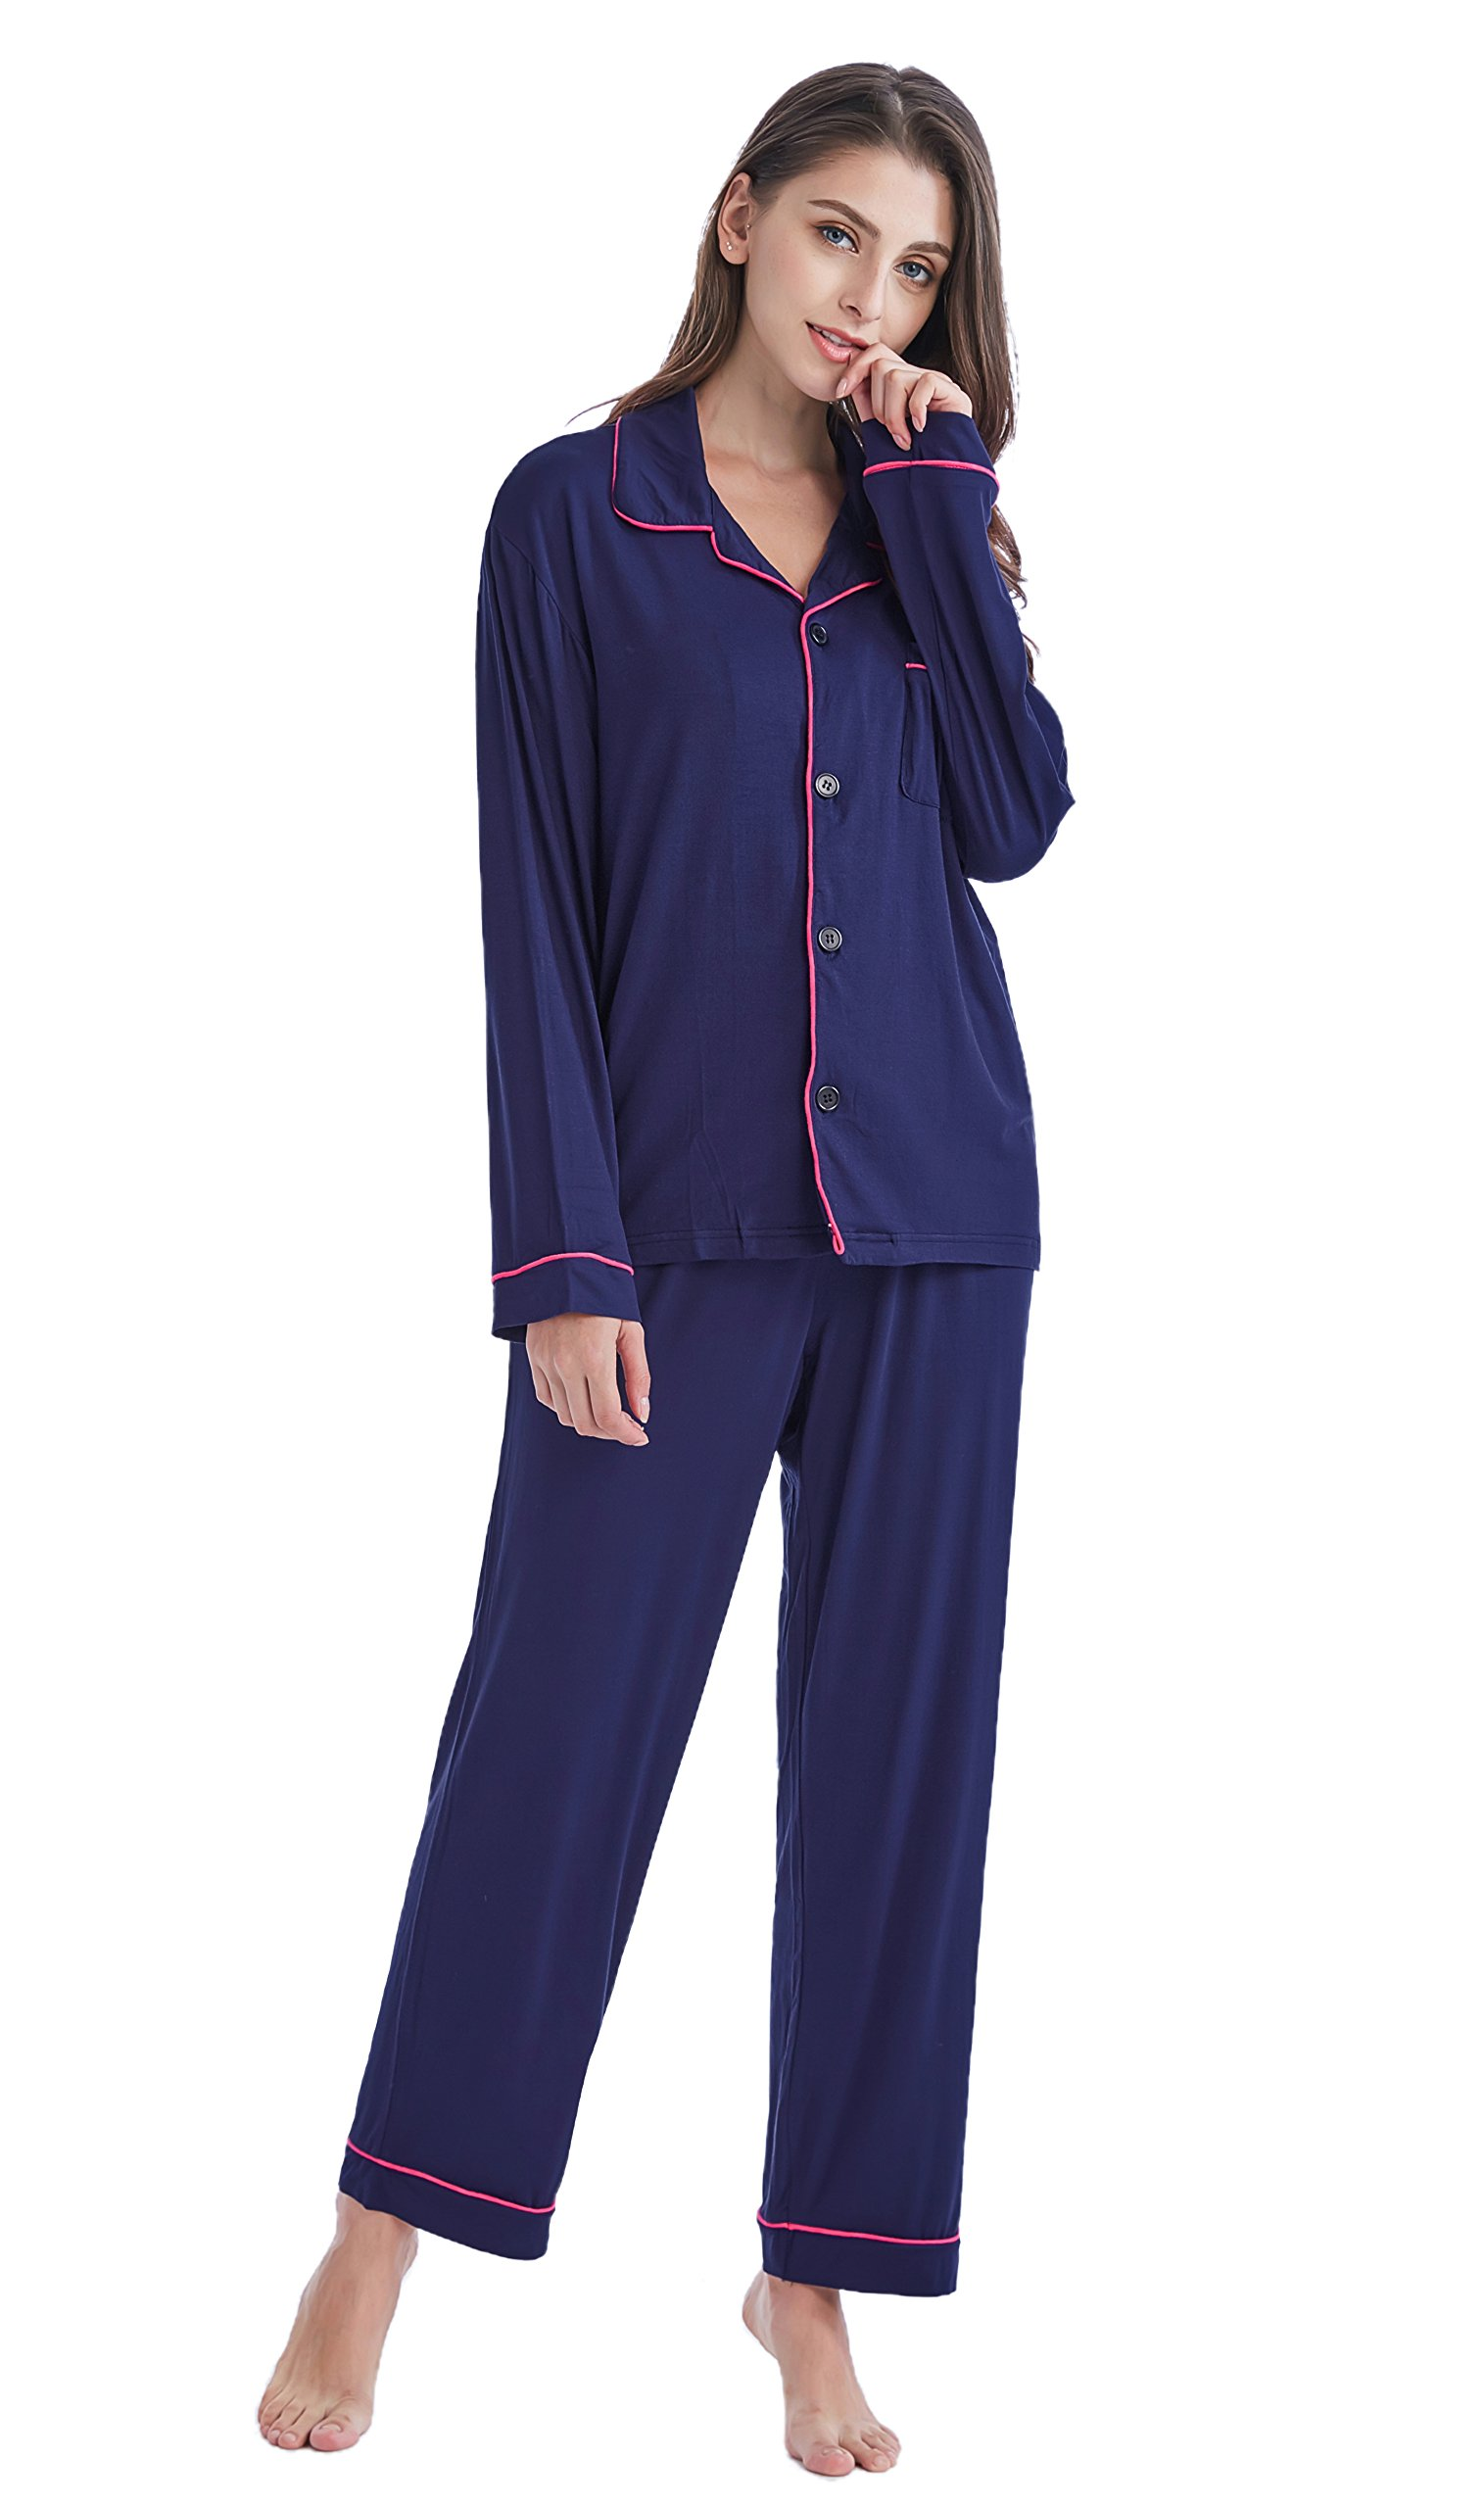 TONY AND CANDICE Women's Sleepwear Long Sleeve Knit Pajama Set with Pants